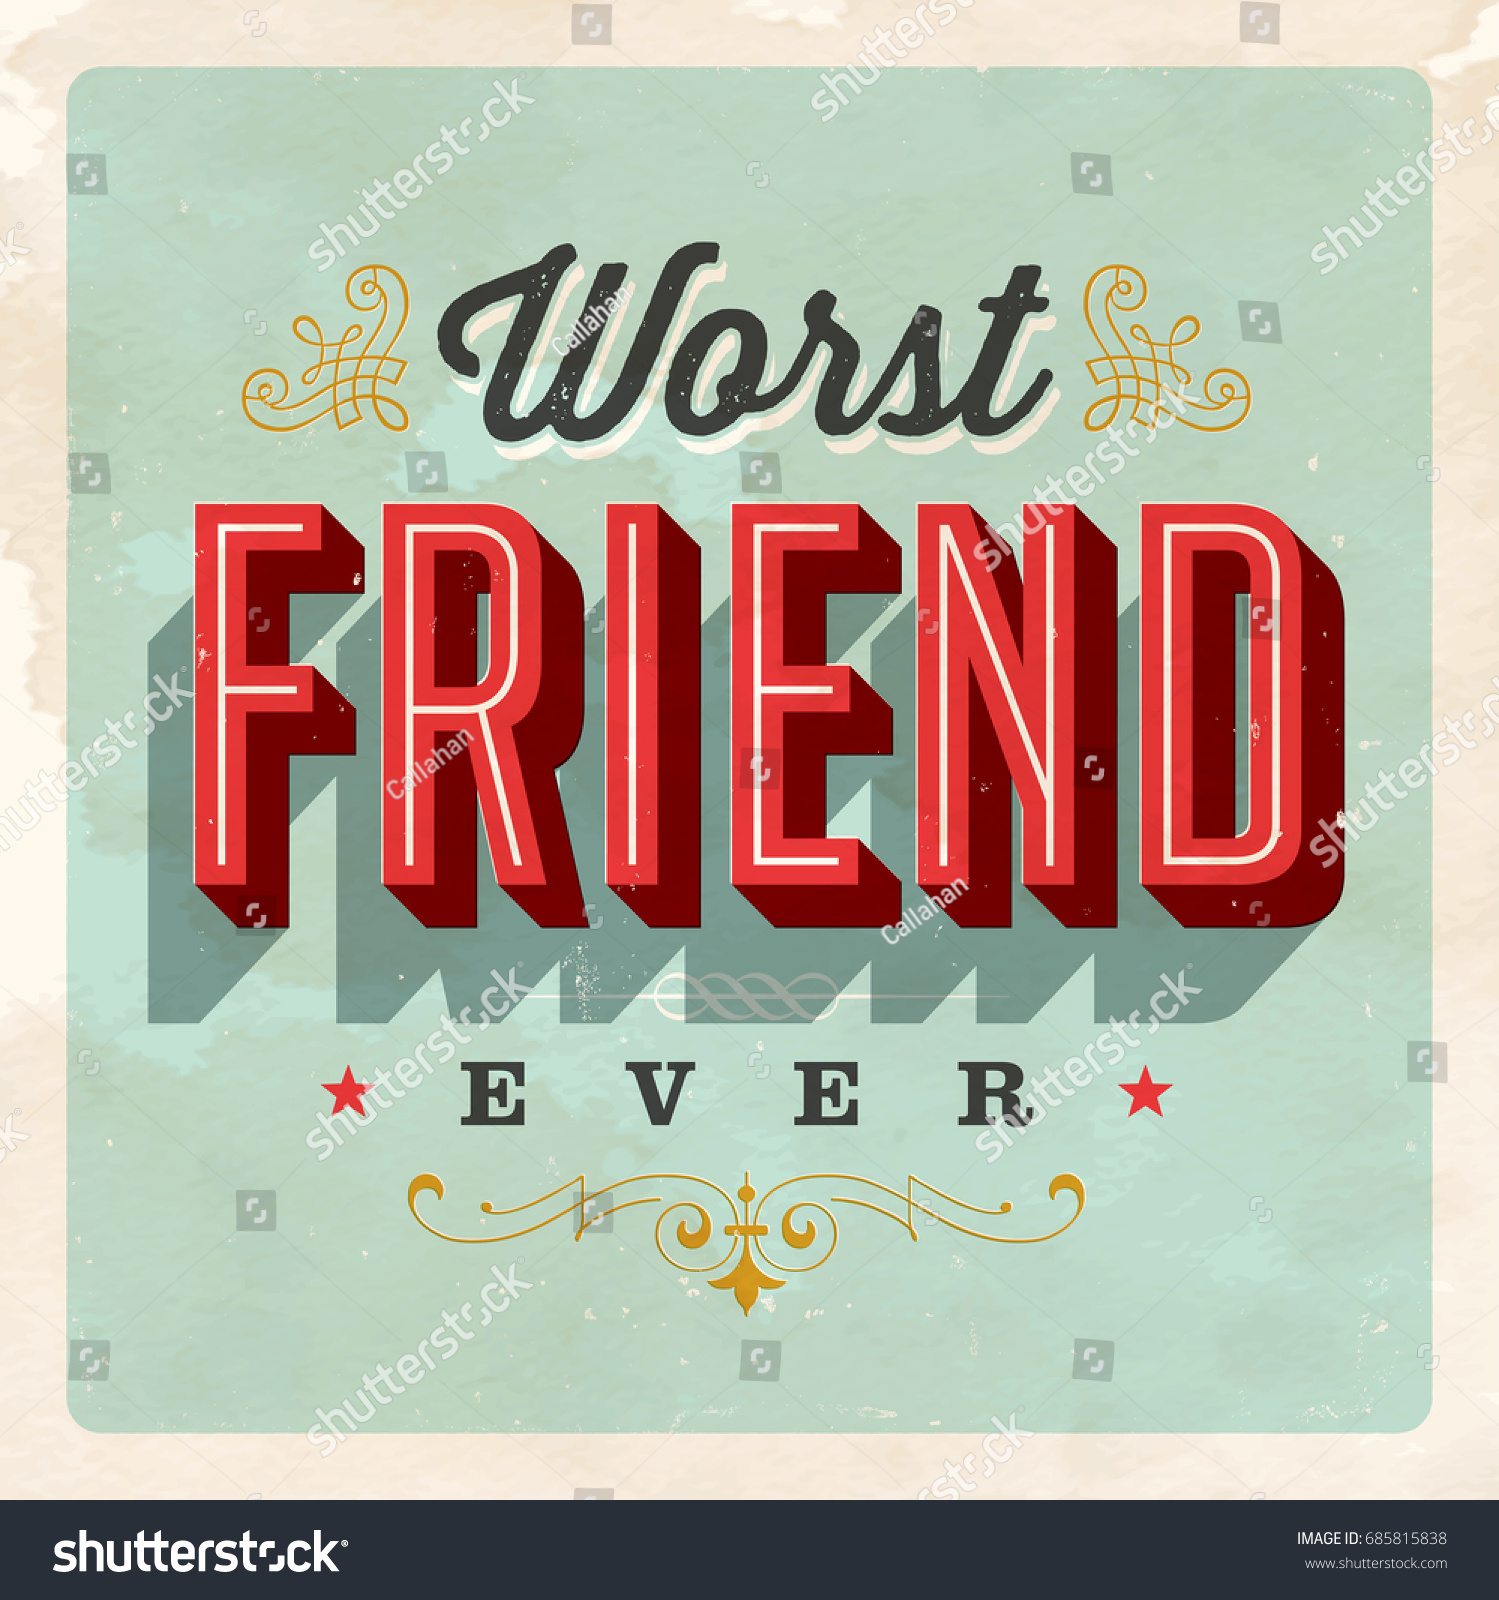 Vintage style postcard worst friend ever stock vector royalty free vintage style postcard worst friend ever vector eps 10 grunge effects can be m4hsunfo